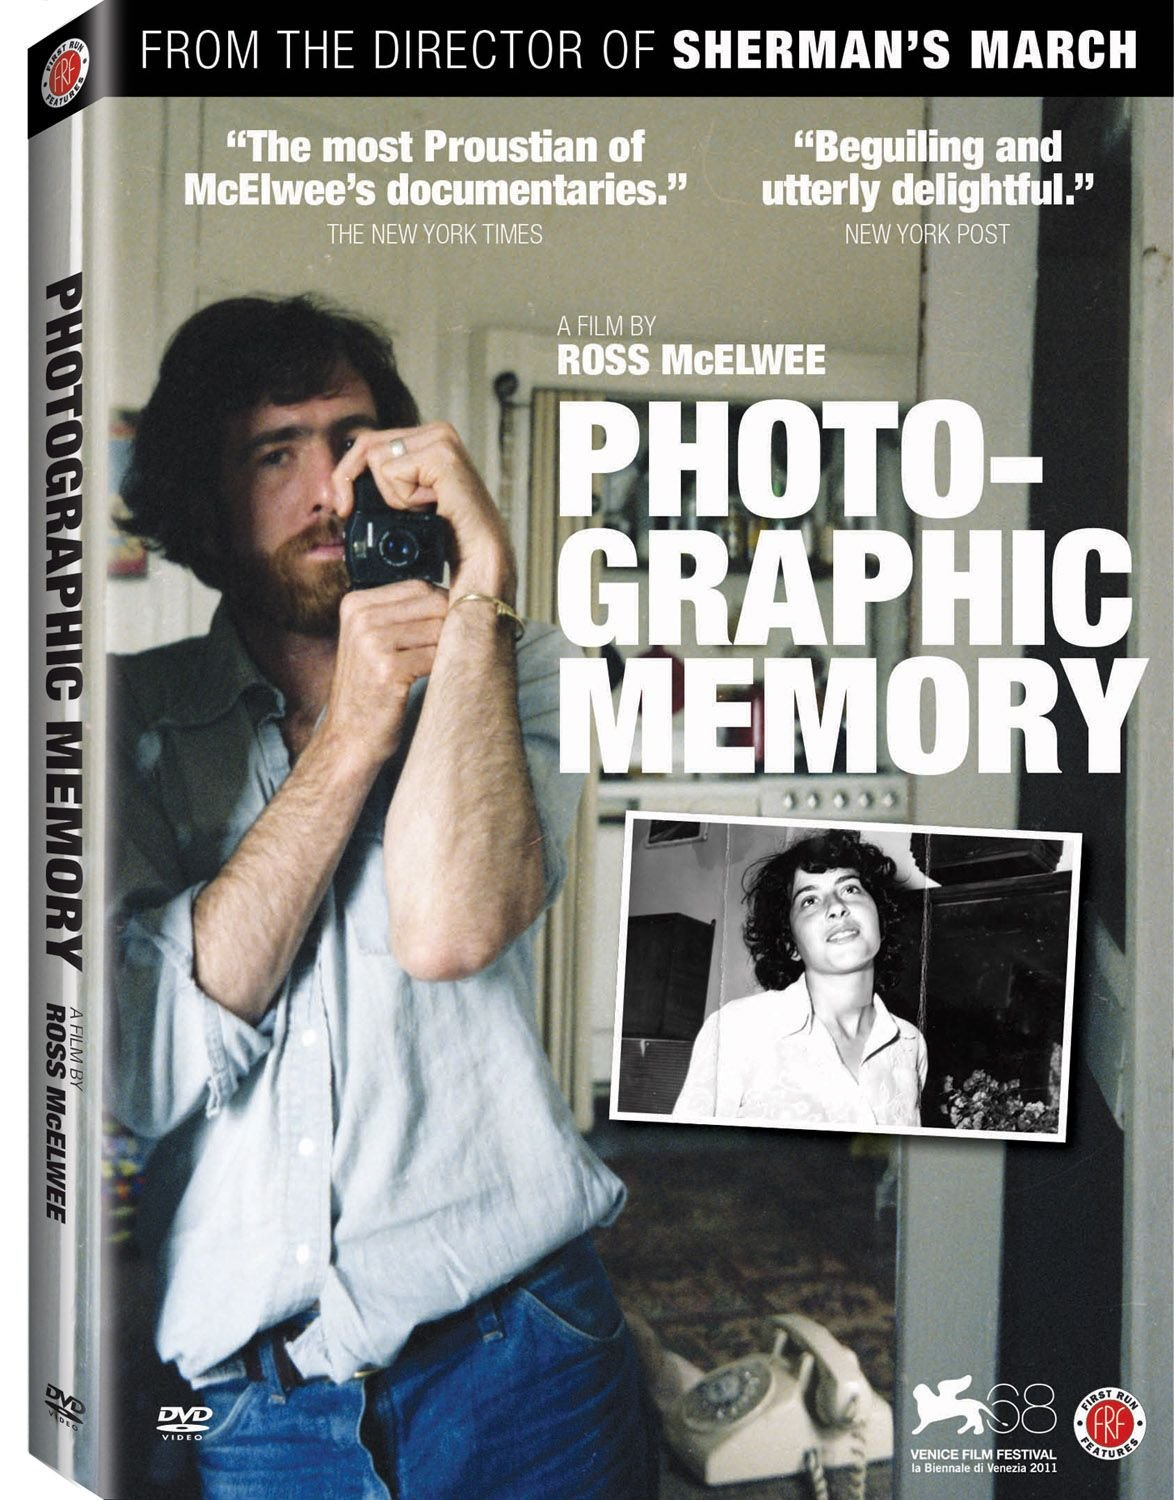 DVD : Ross McElwee - Photographic Memory (DVD)